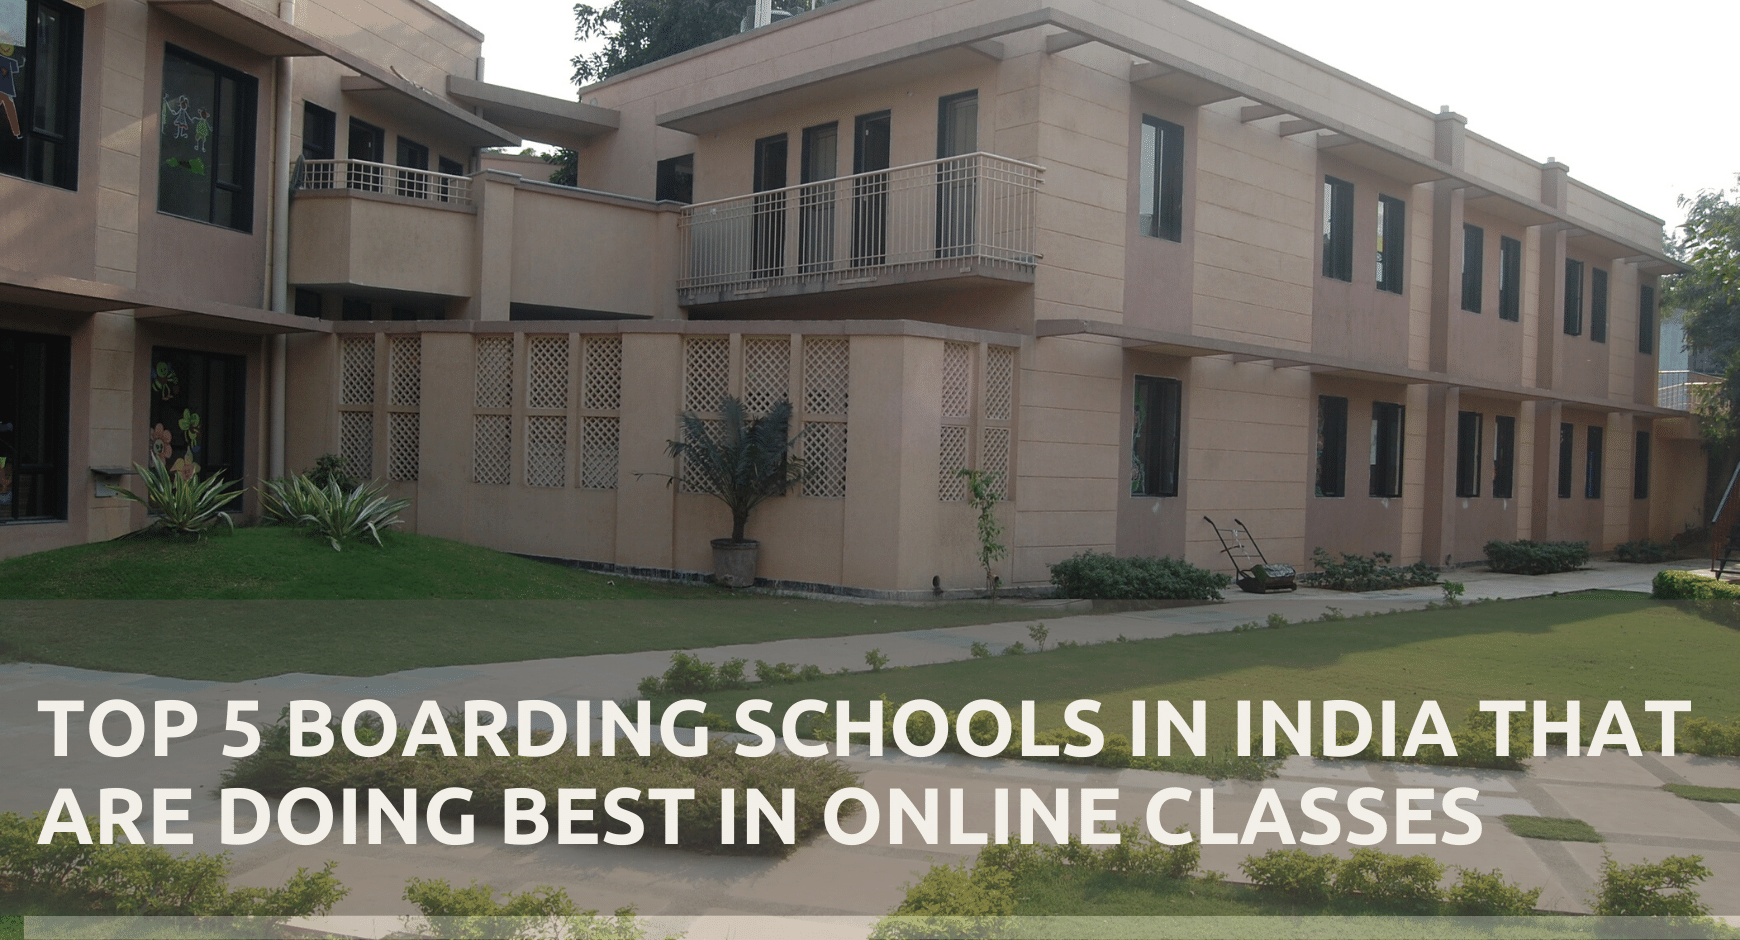 Top 5 boarding schools in India that are doing best in online classes